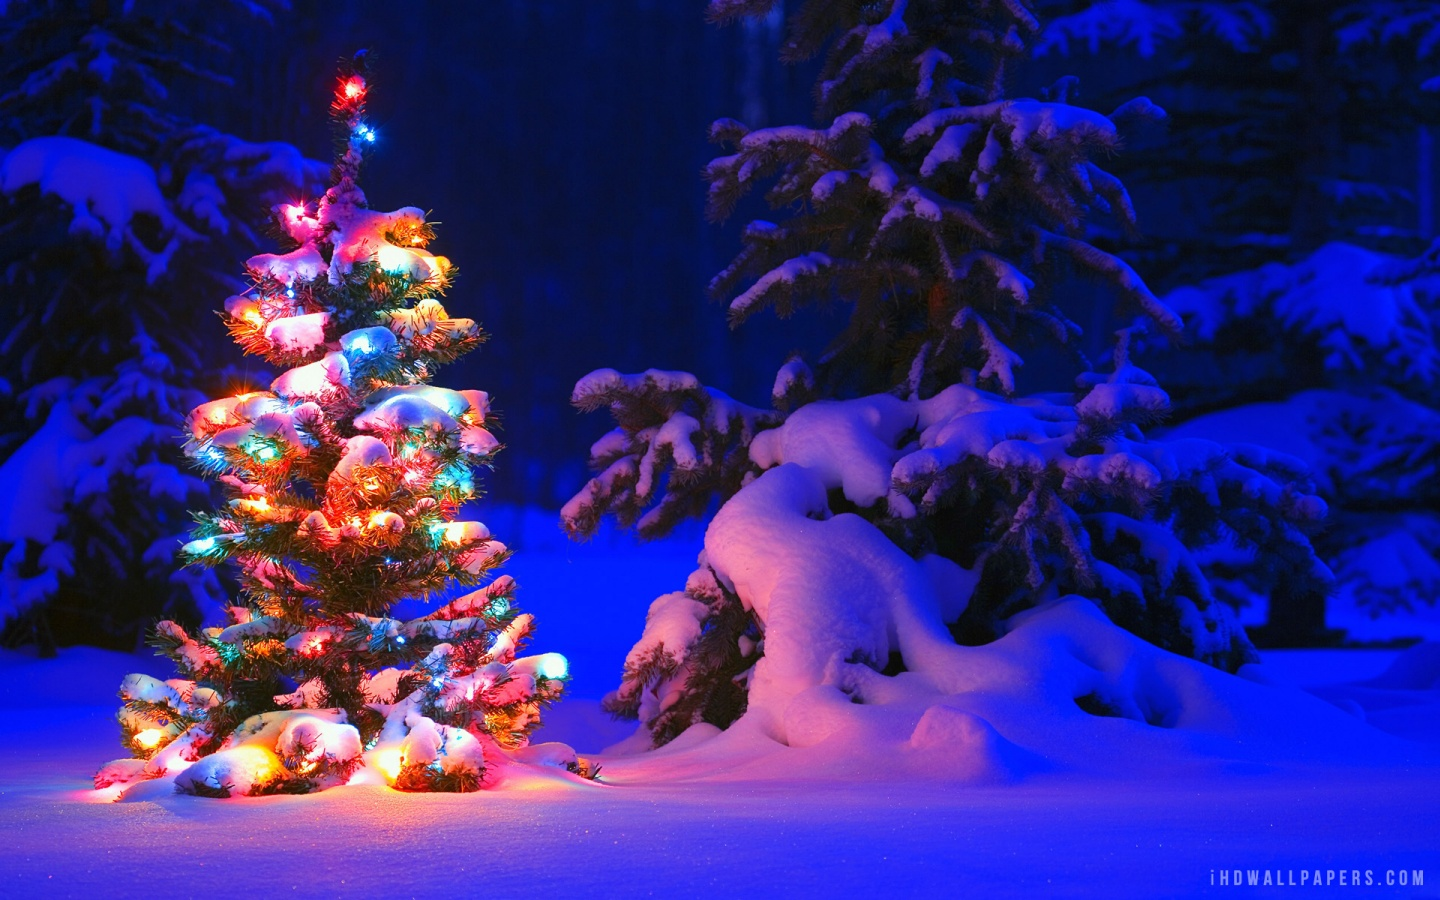 Christmas Wallpaper for Windows 10 - WallpaperSafari